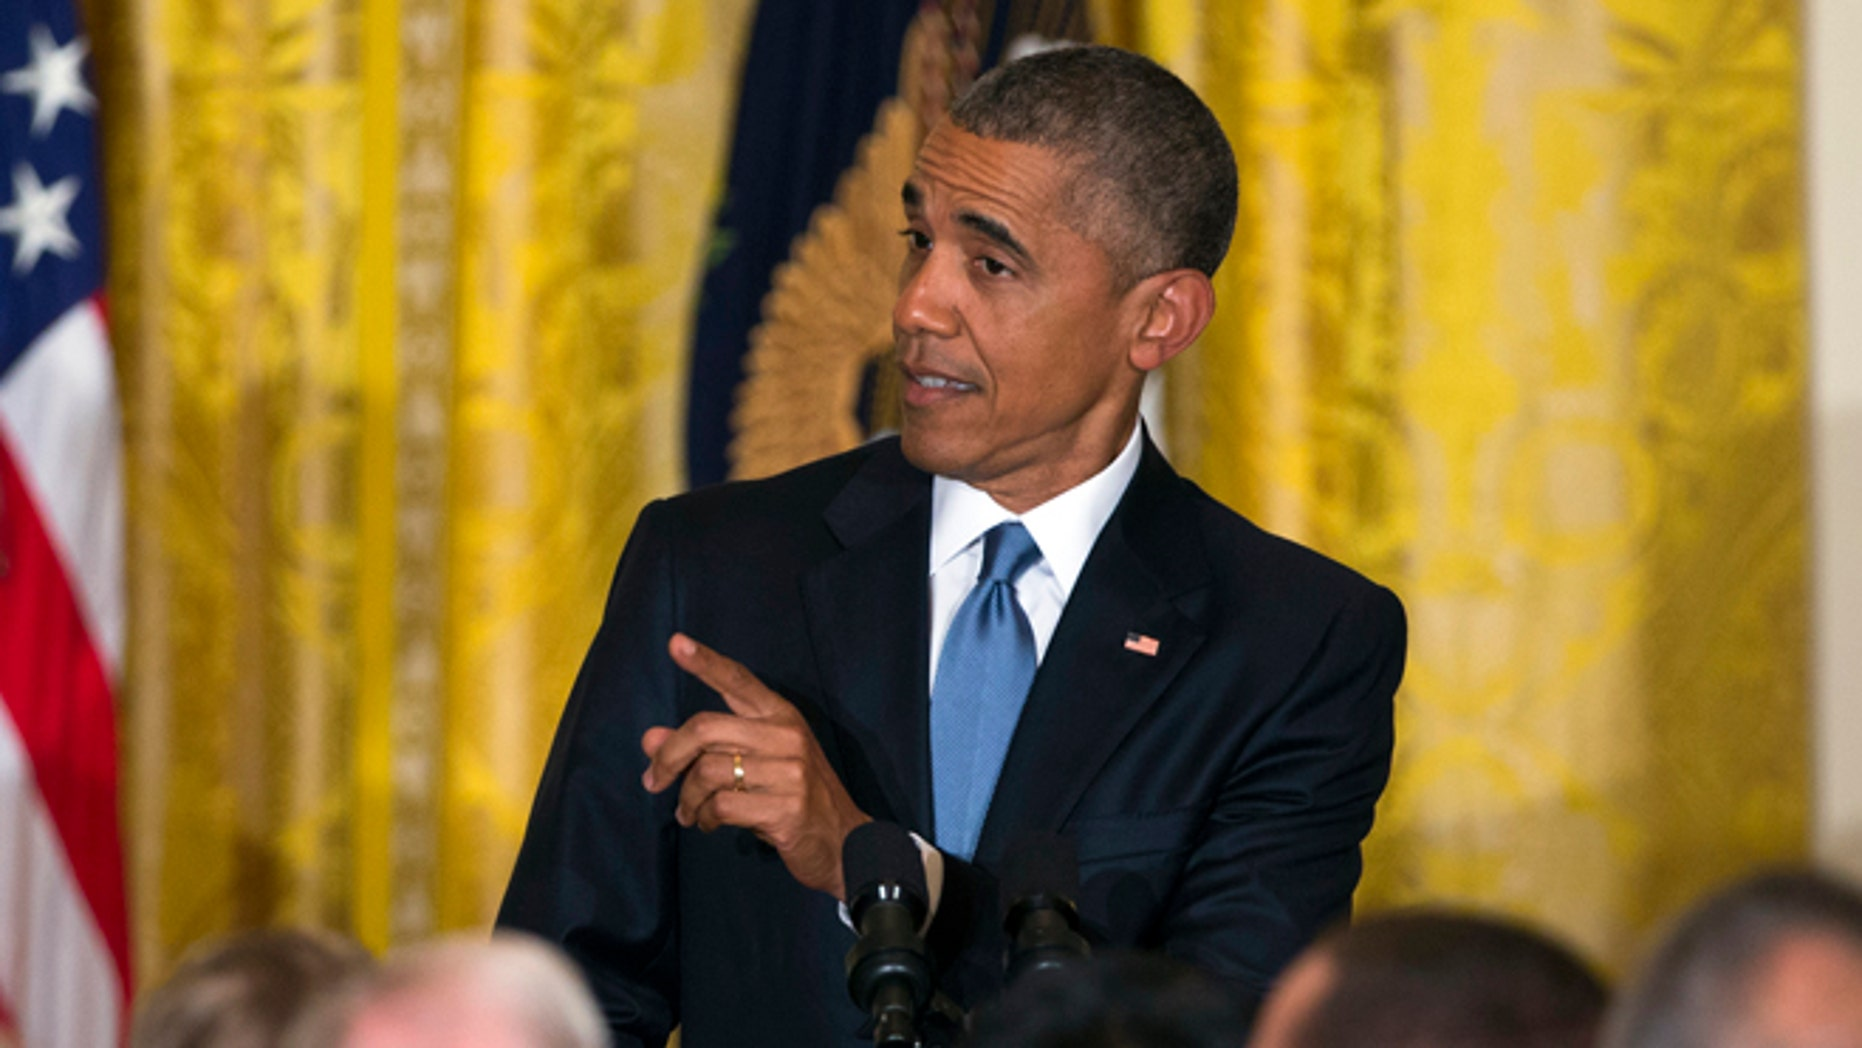 President Barack Obama responds to a heckler as he speaks during a reception to celebrate LGBT Pride Month in the East Room of the White House, on Wednesday, June 24, 2015, in Washington. (AP Photo/Evan Vucci)